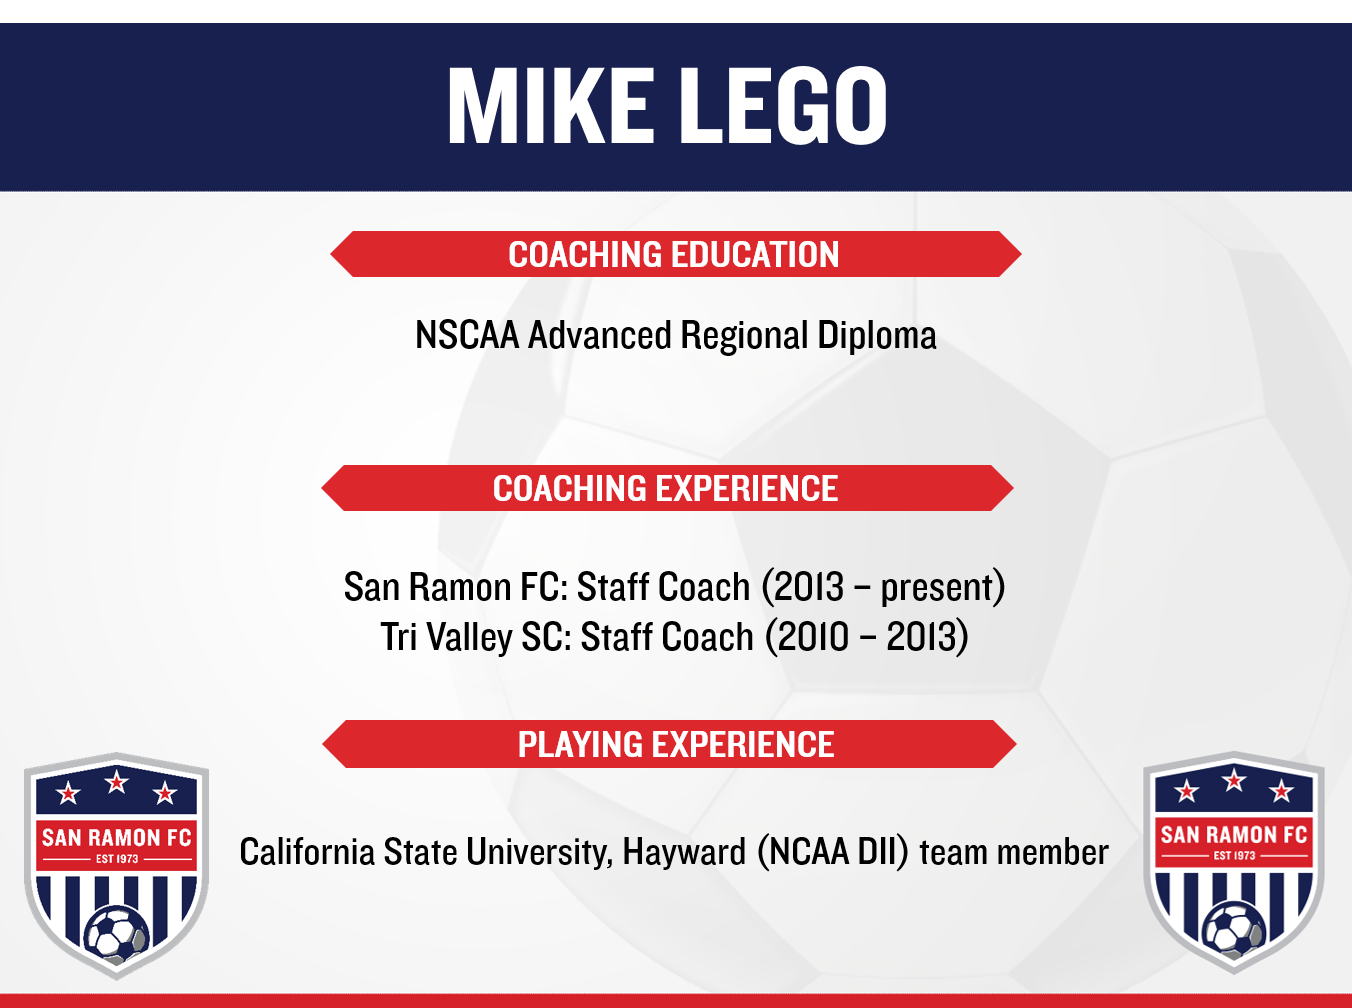 Mike Lego